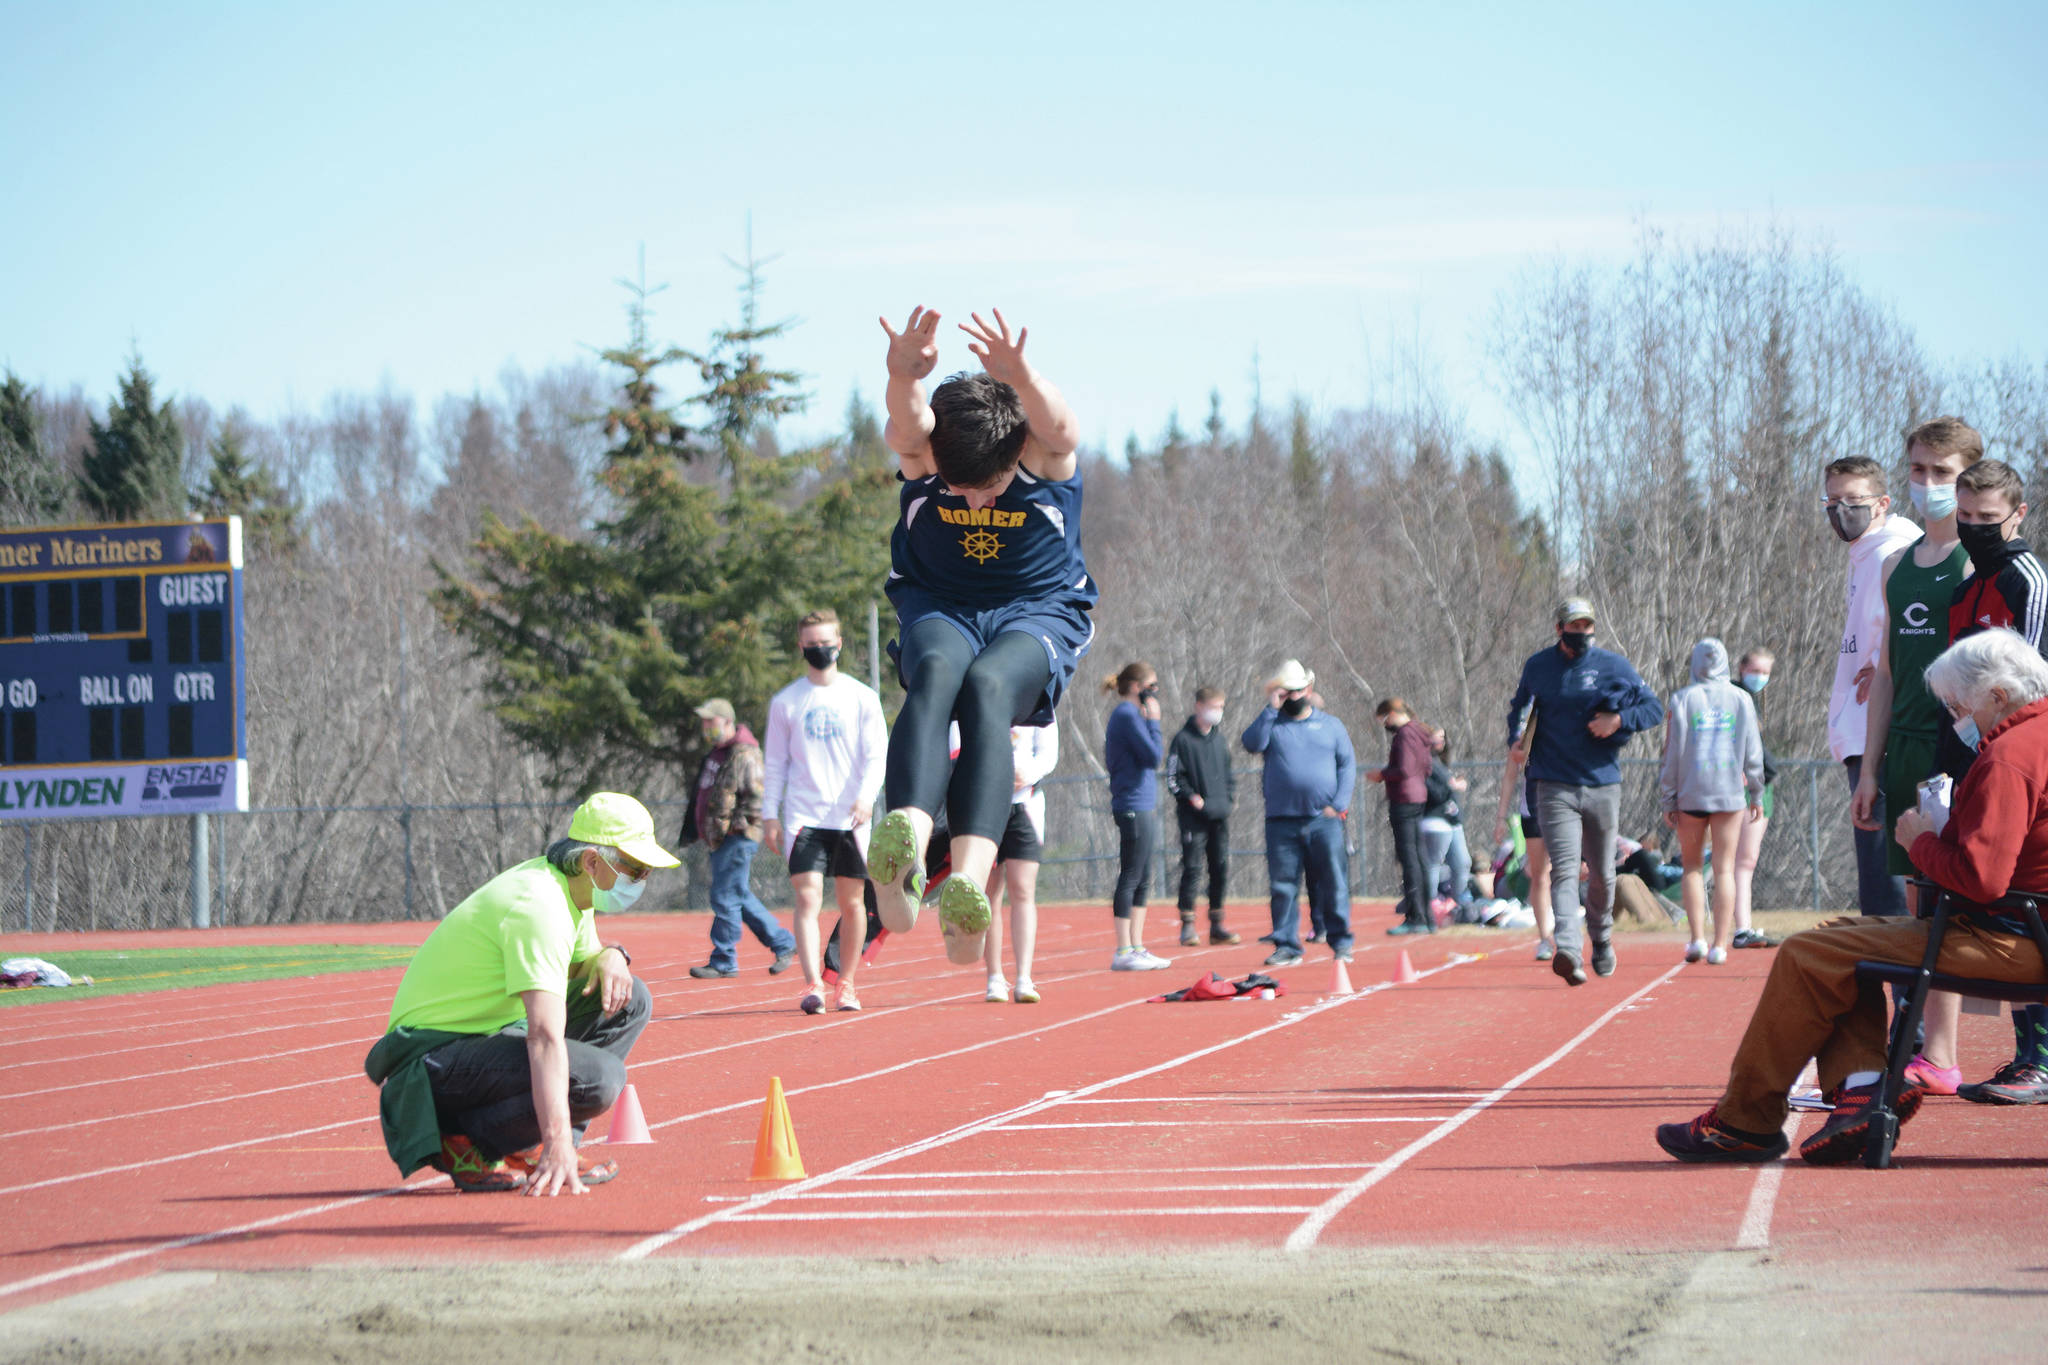 Homer High School Mariner Ryan Carroll competes in the long jump on Saturday, April 24, 2021, at Homer High School in Homer, Alaska. (Photo by Michael Armstrong/Homer News)